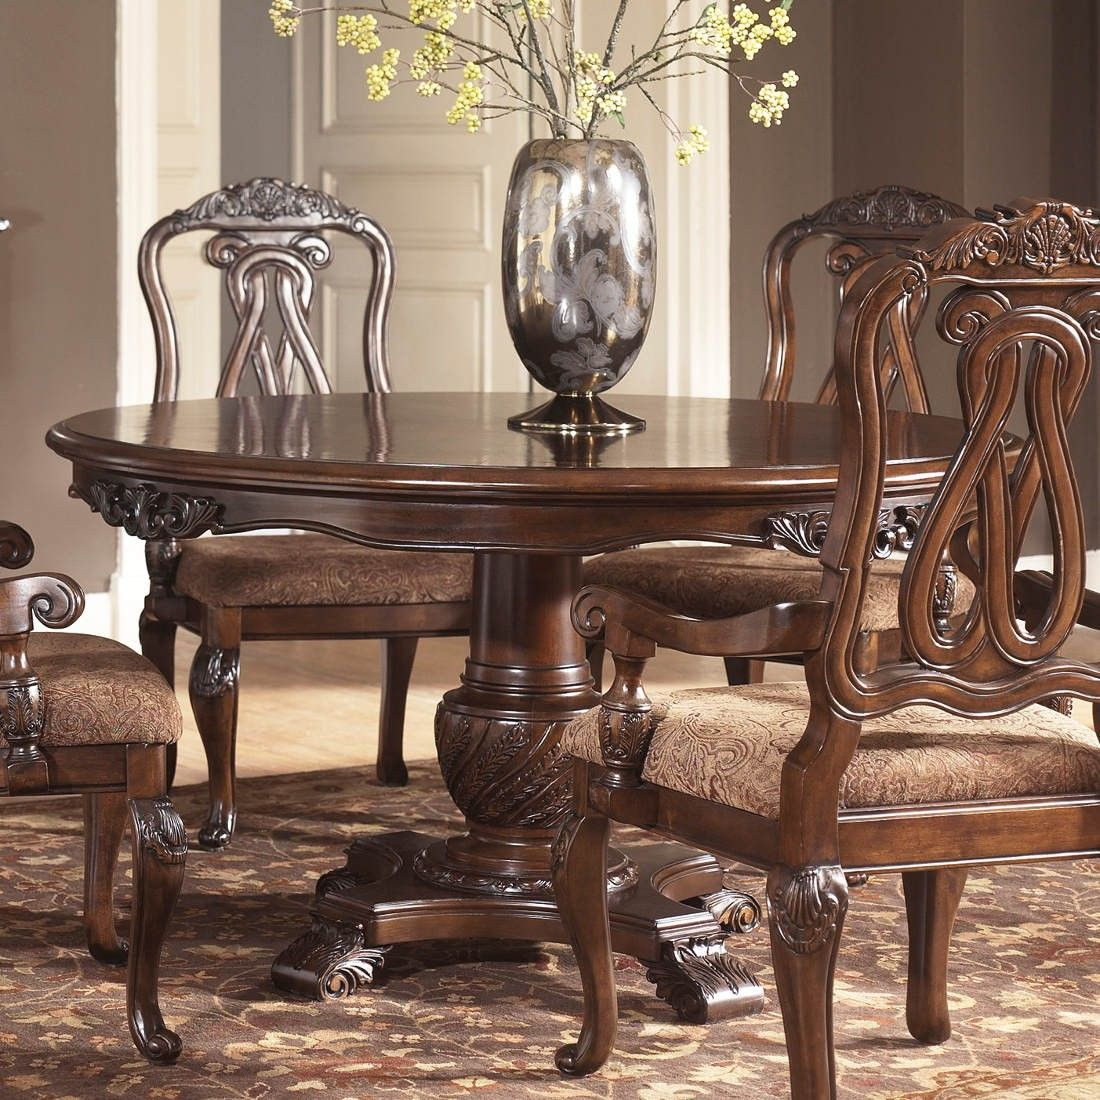 A Deep Rich Stained Finish And Exquisite Details Come Together To Enchanting Dining Room Sets Ashley Furniture Inspiration